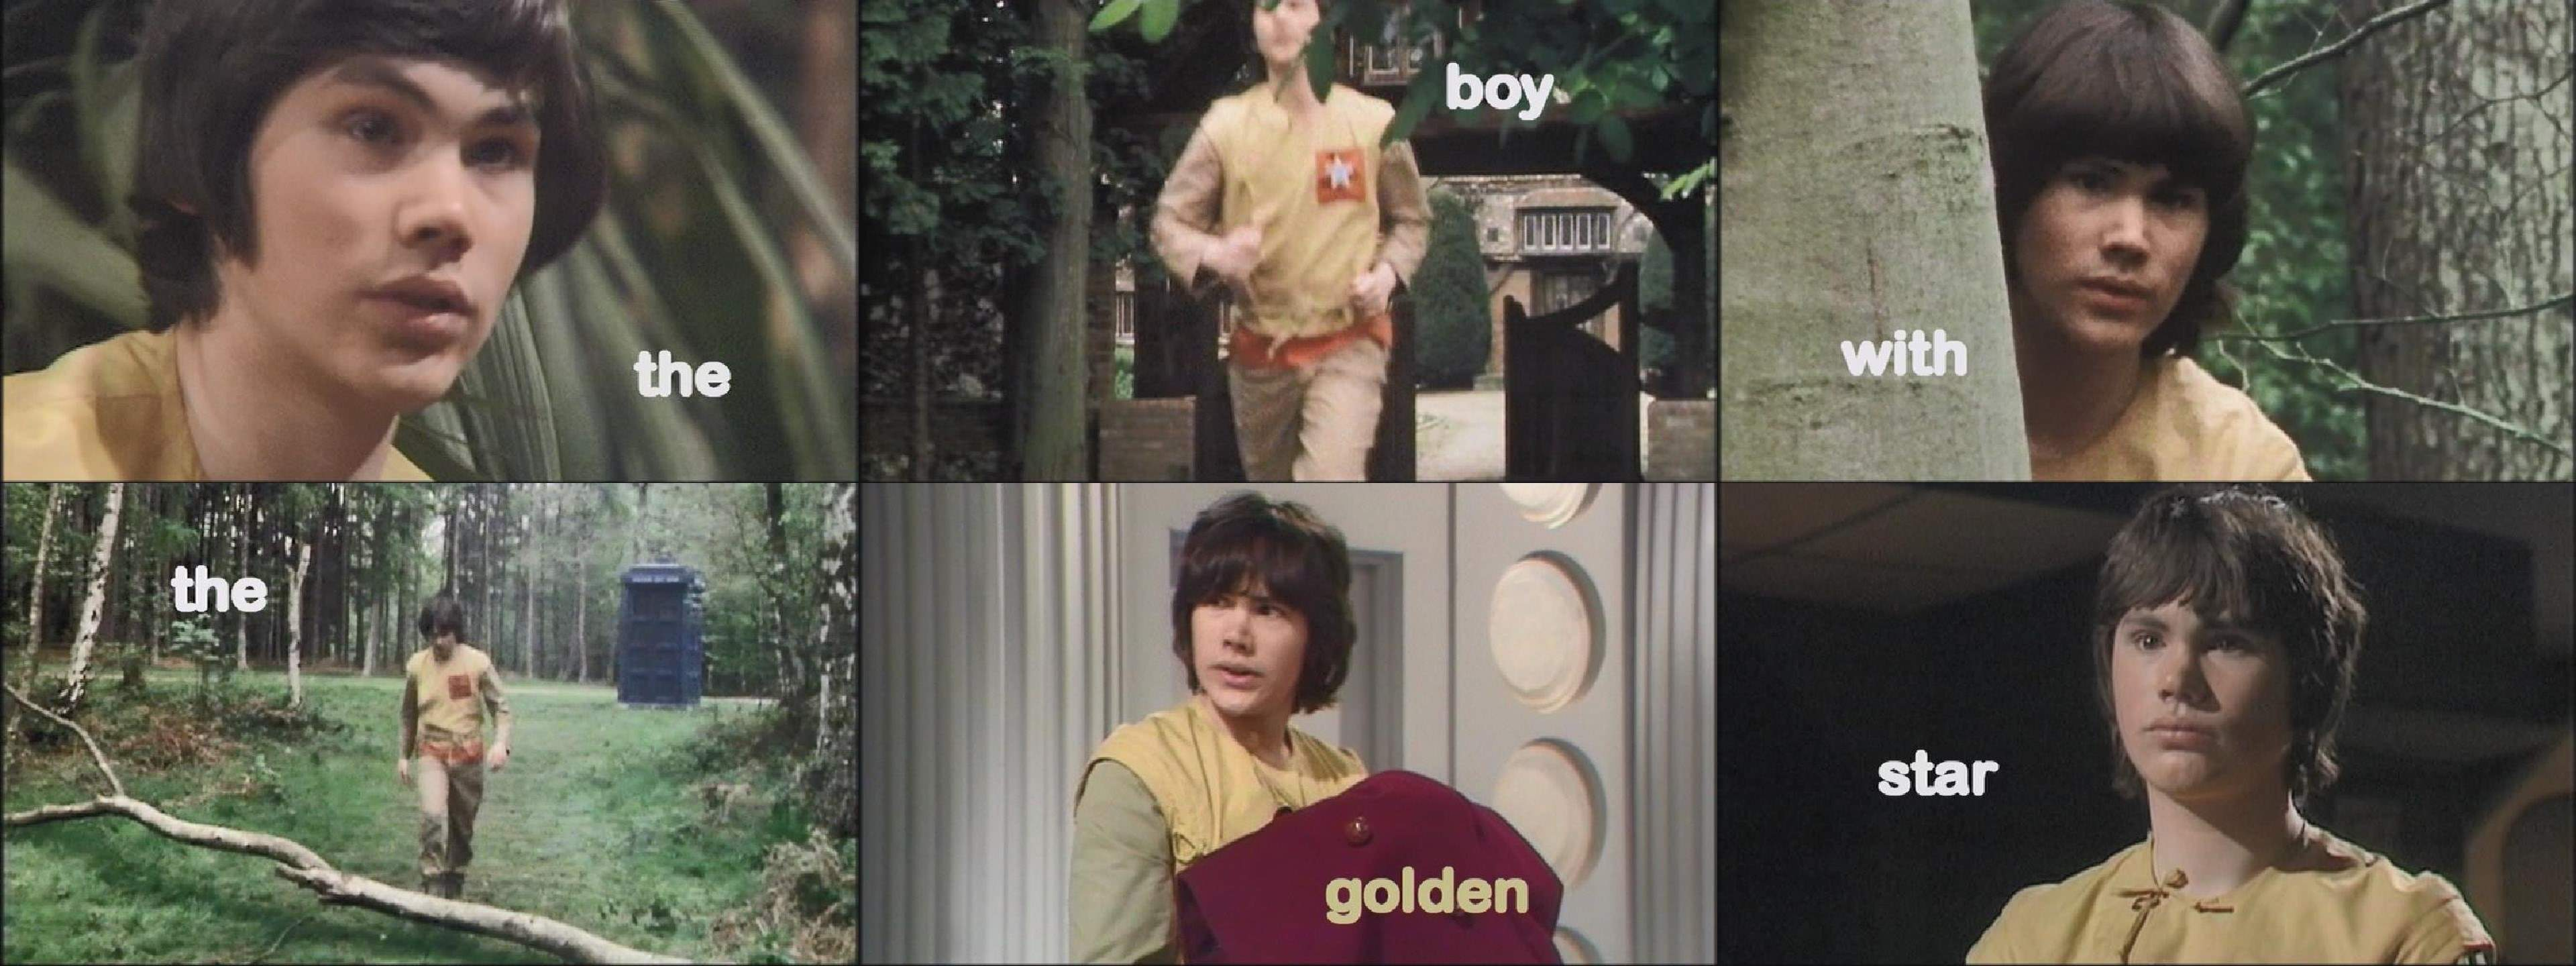 The Boy with the Golden Star (documentary)